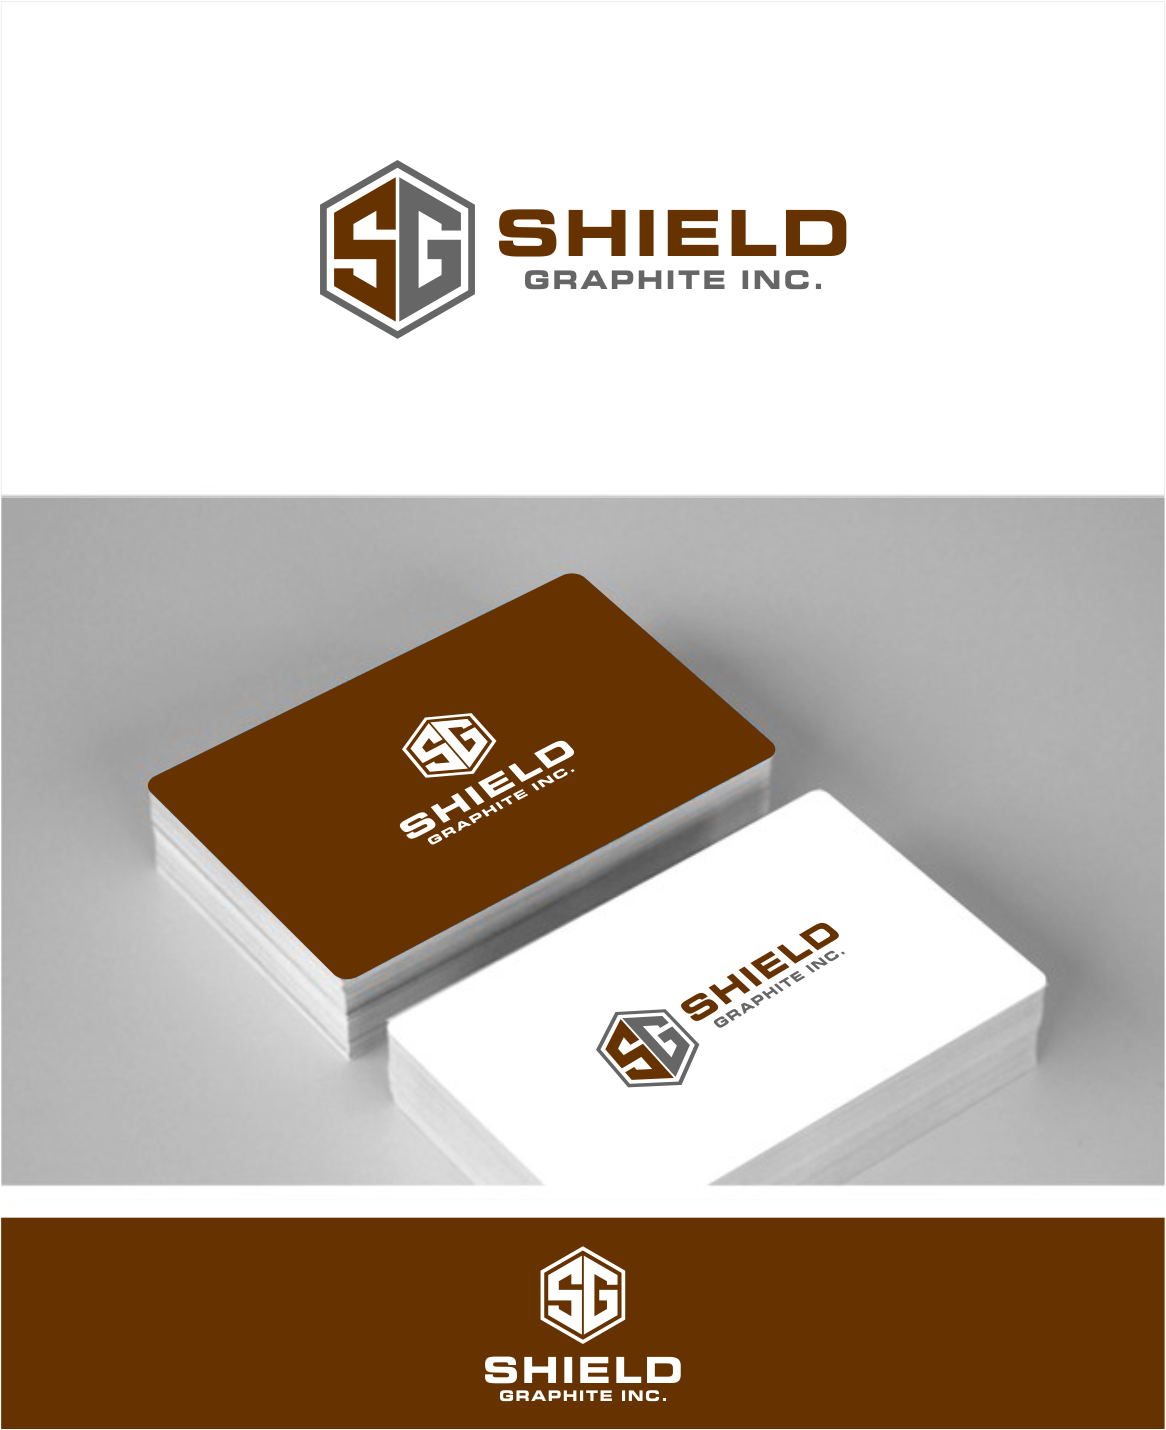 Logo Design by haidu - Entry No. 66 in the Logo Design Contest Imaginative Logo Design for Shield Graphite Inc..